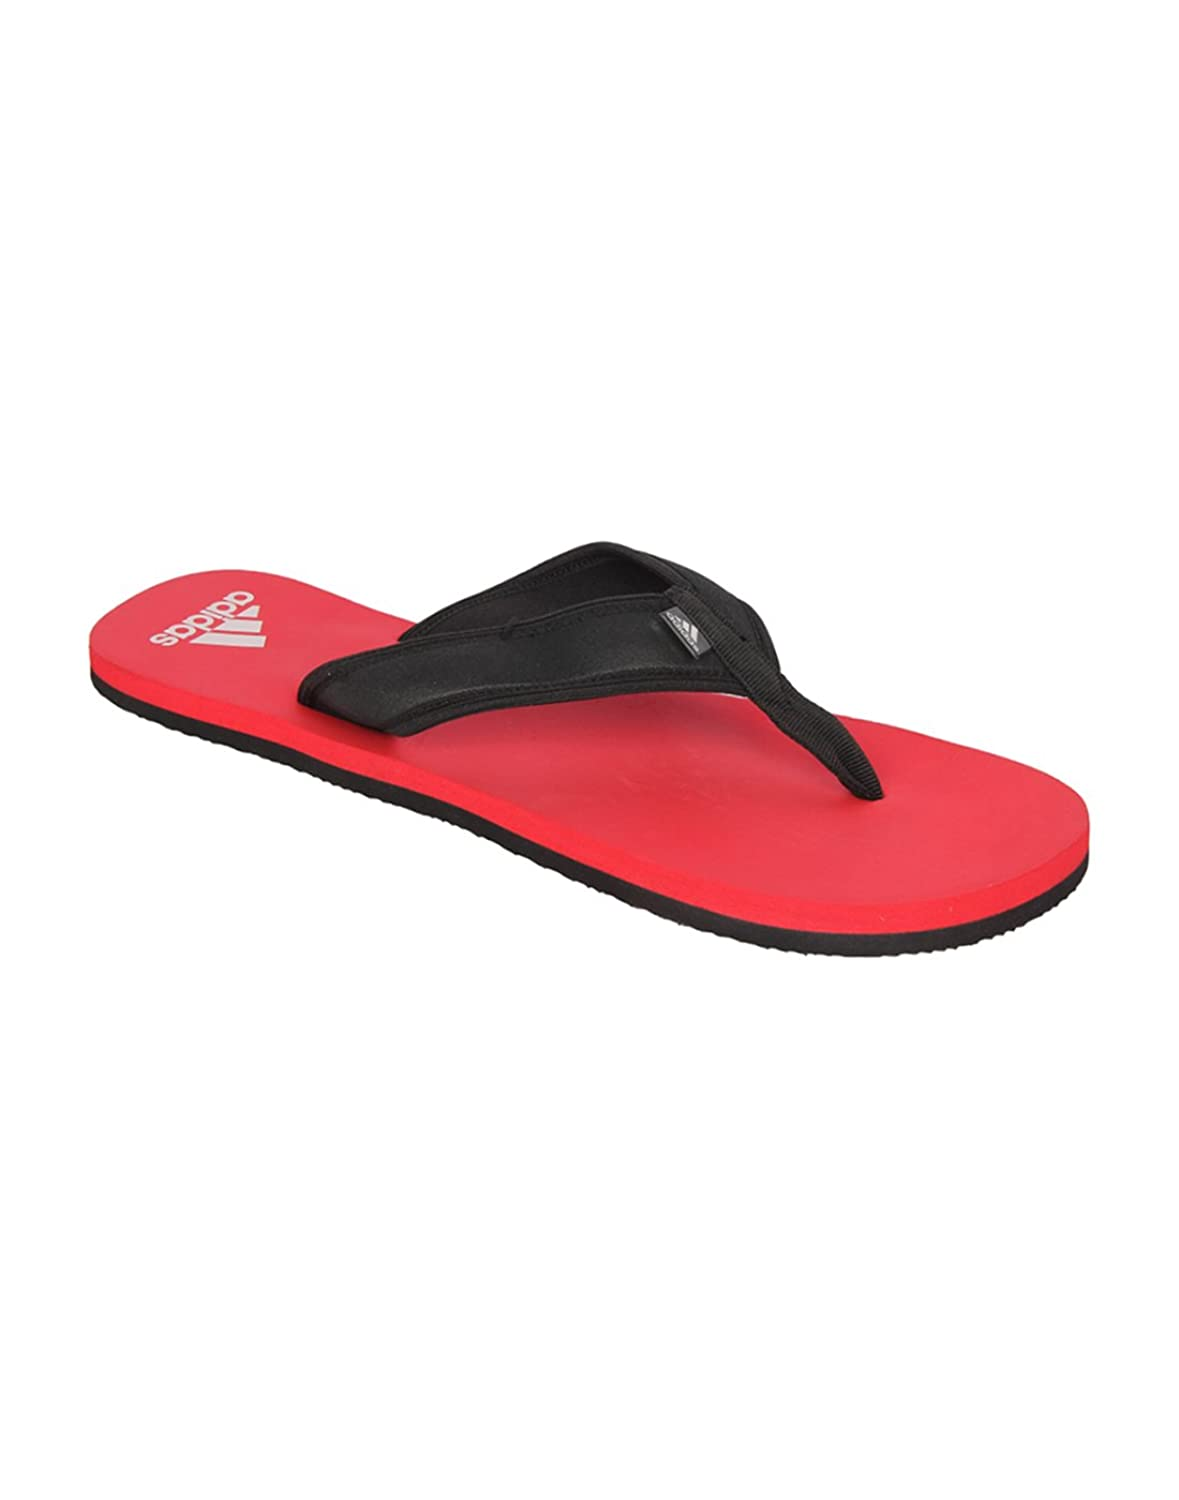 Mens Bedroom Slippers Leather Adidas Mens Adi Rio Flip Flops And House Slippers Buy Online At